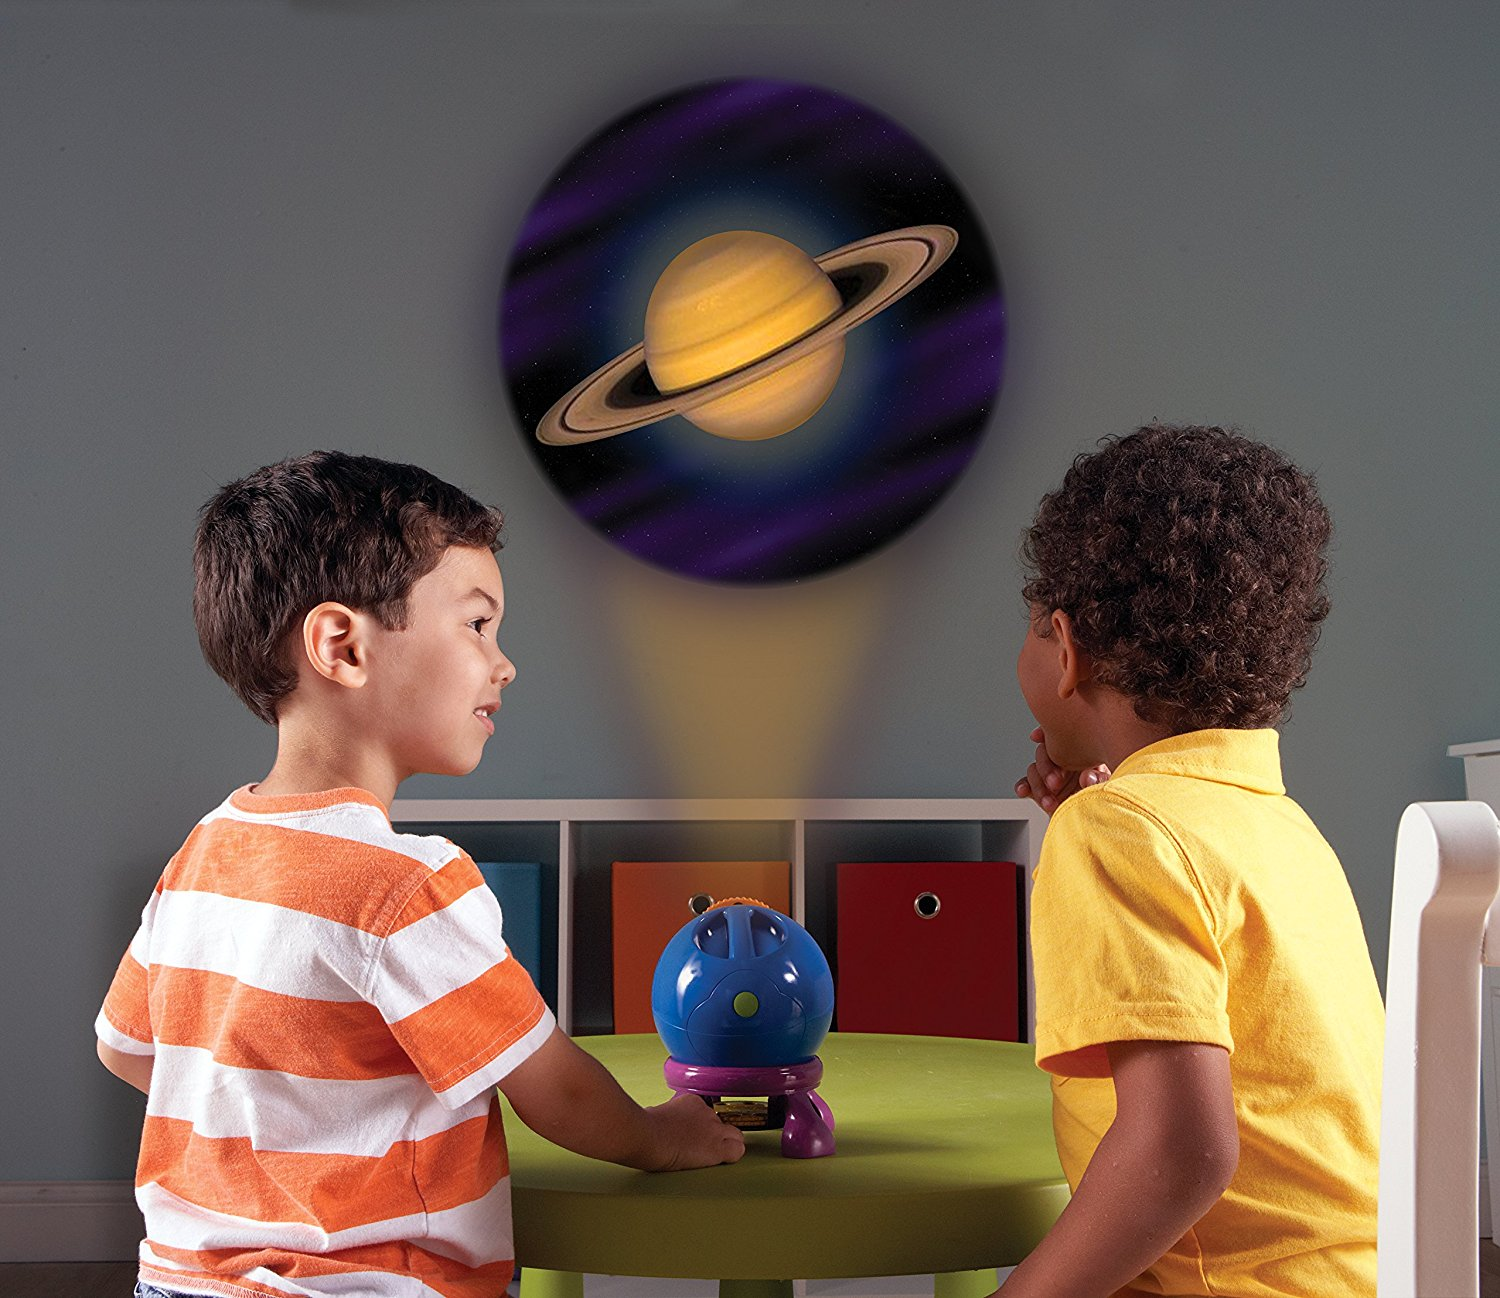 Primii pasi in astronomie proiector spatial indoor Learning Resources 3